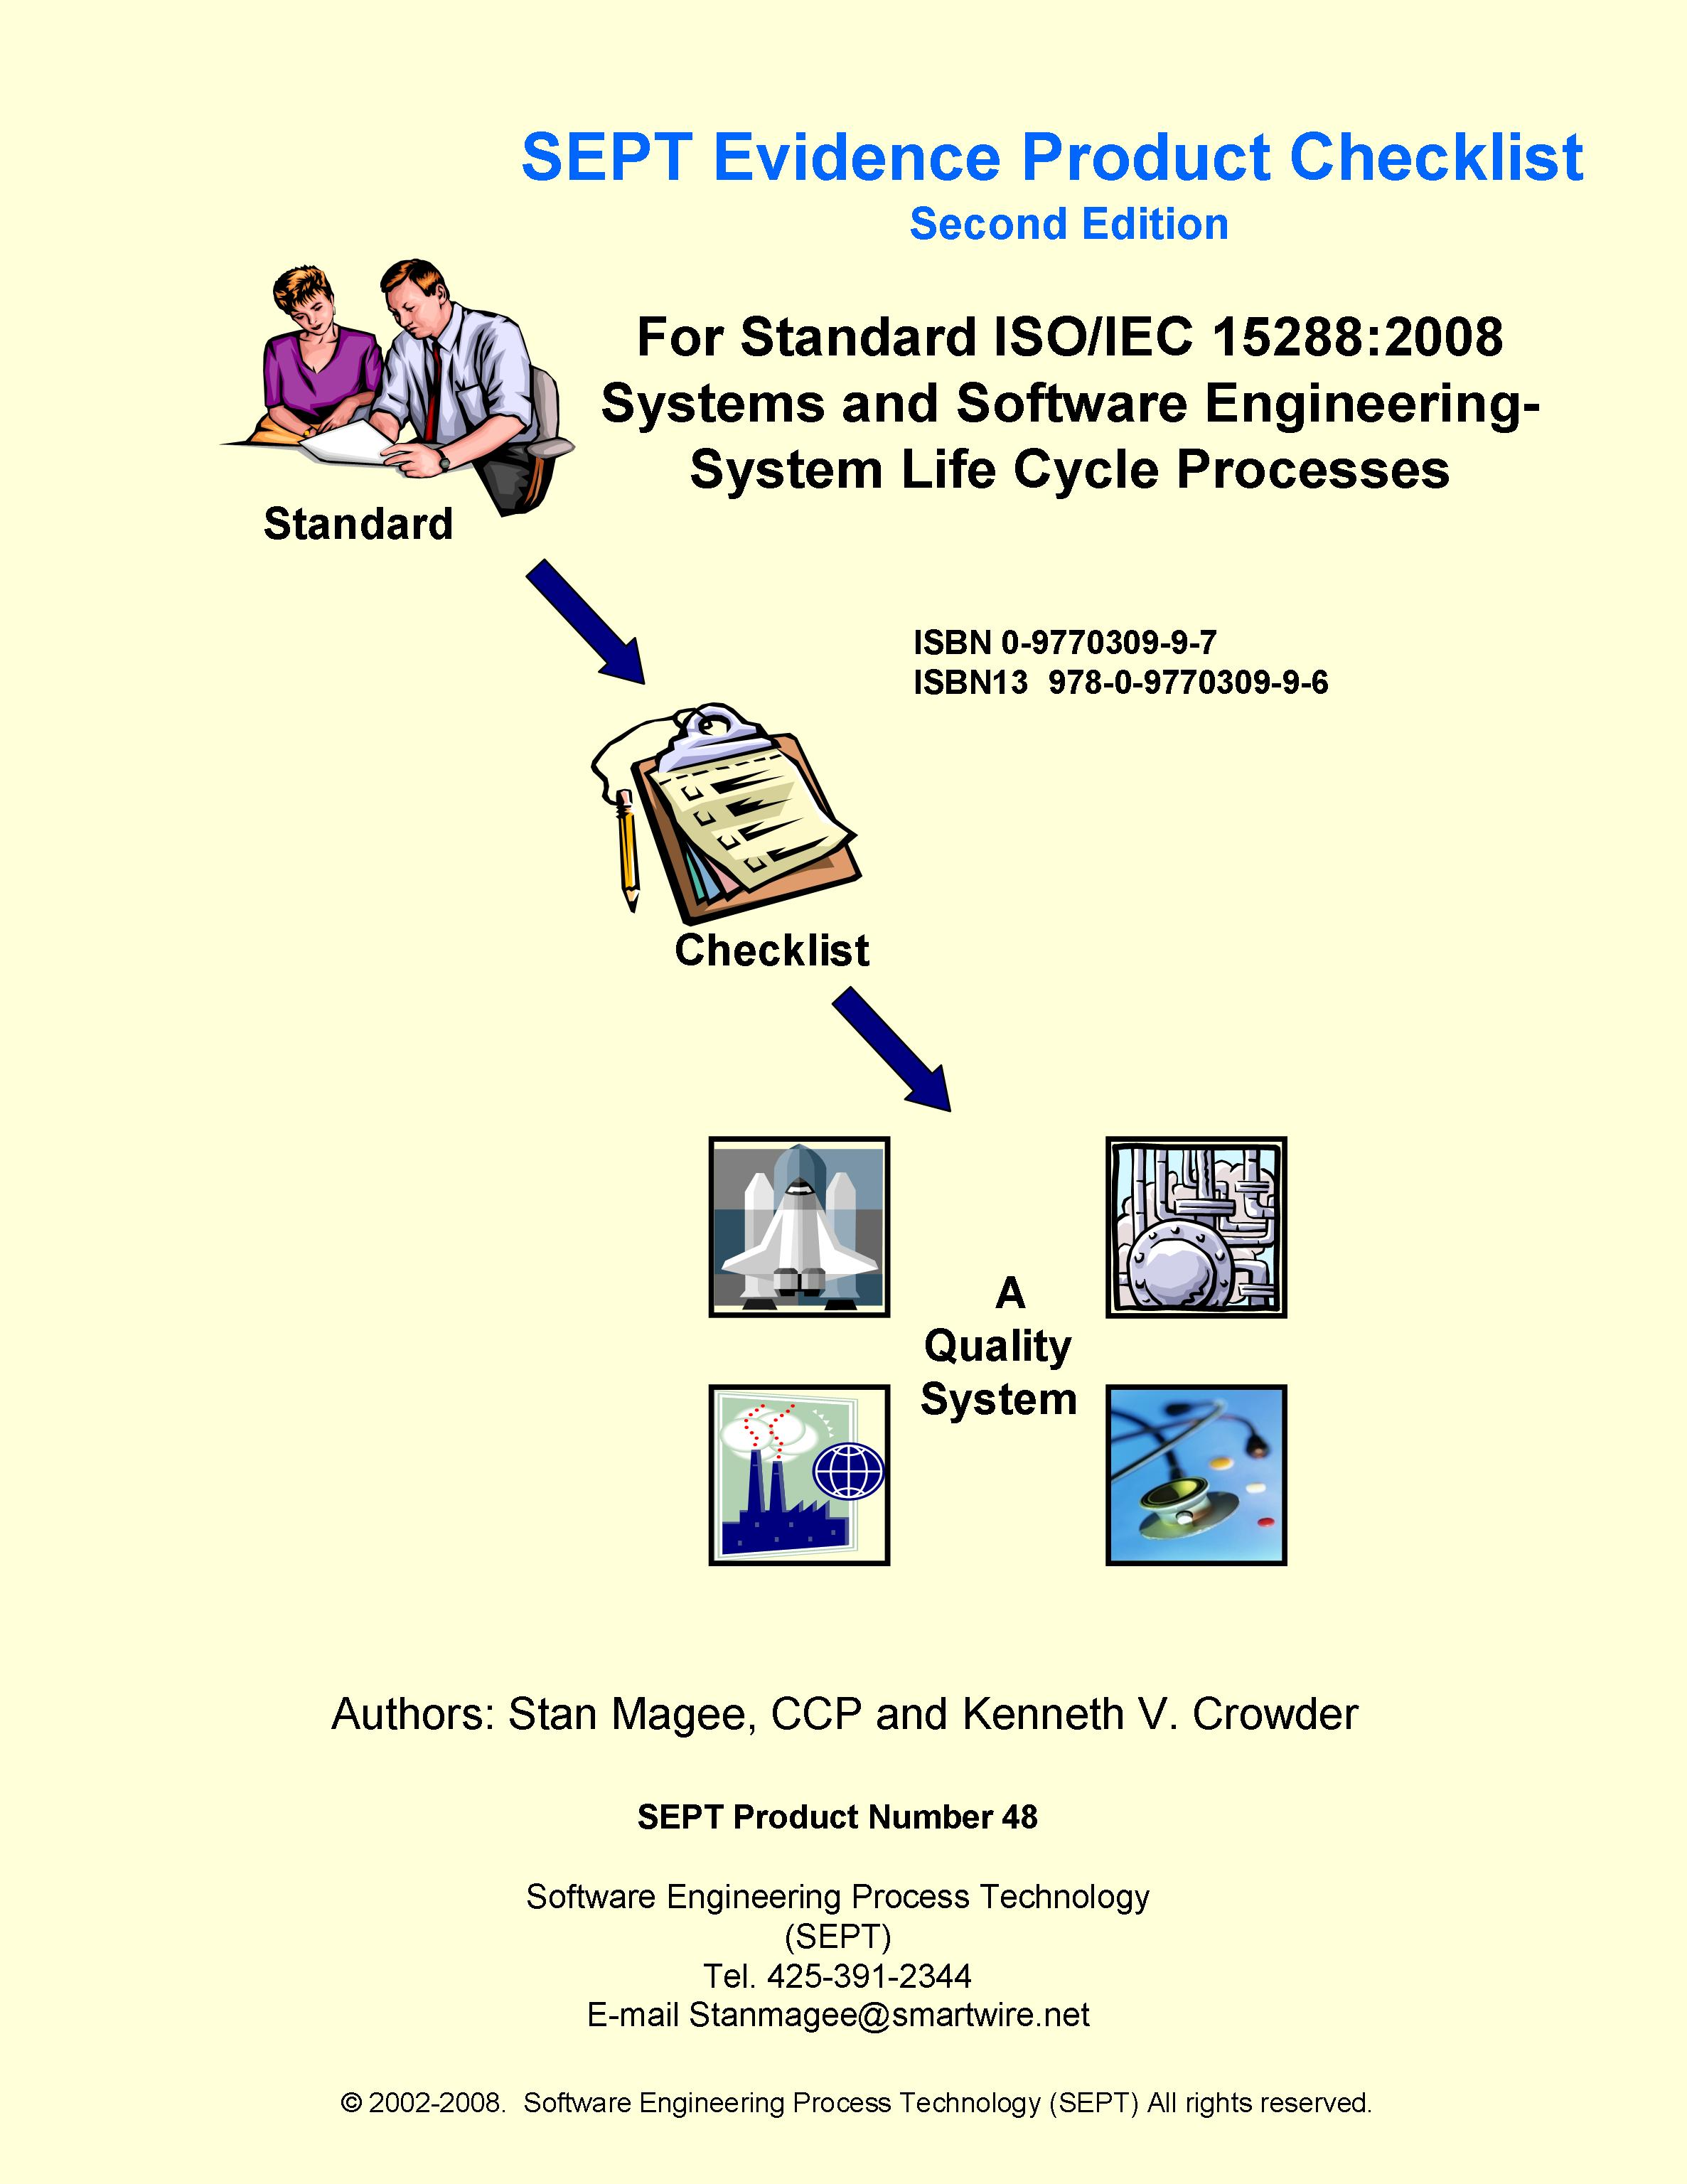 complete evidence checklist of iec 62304